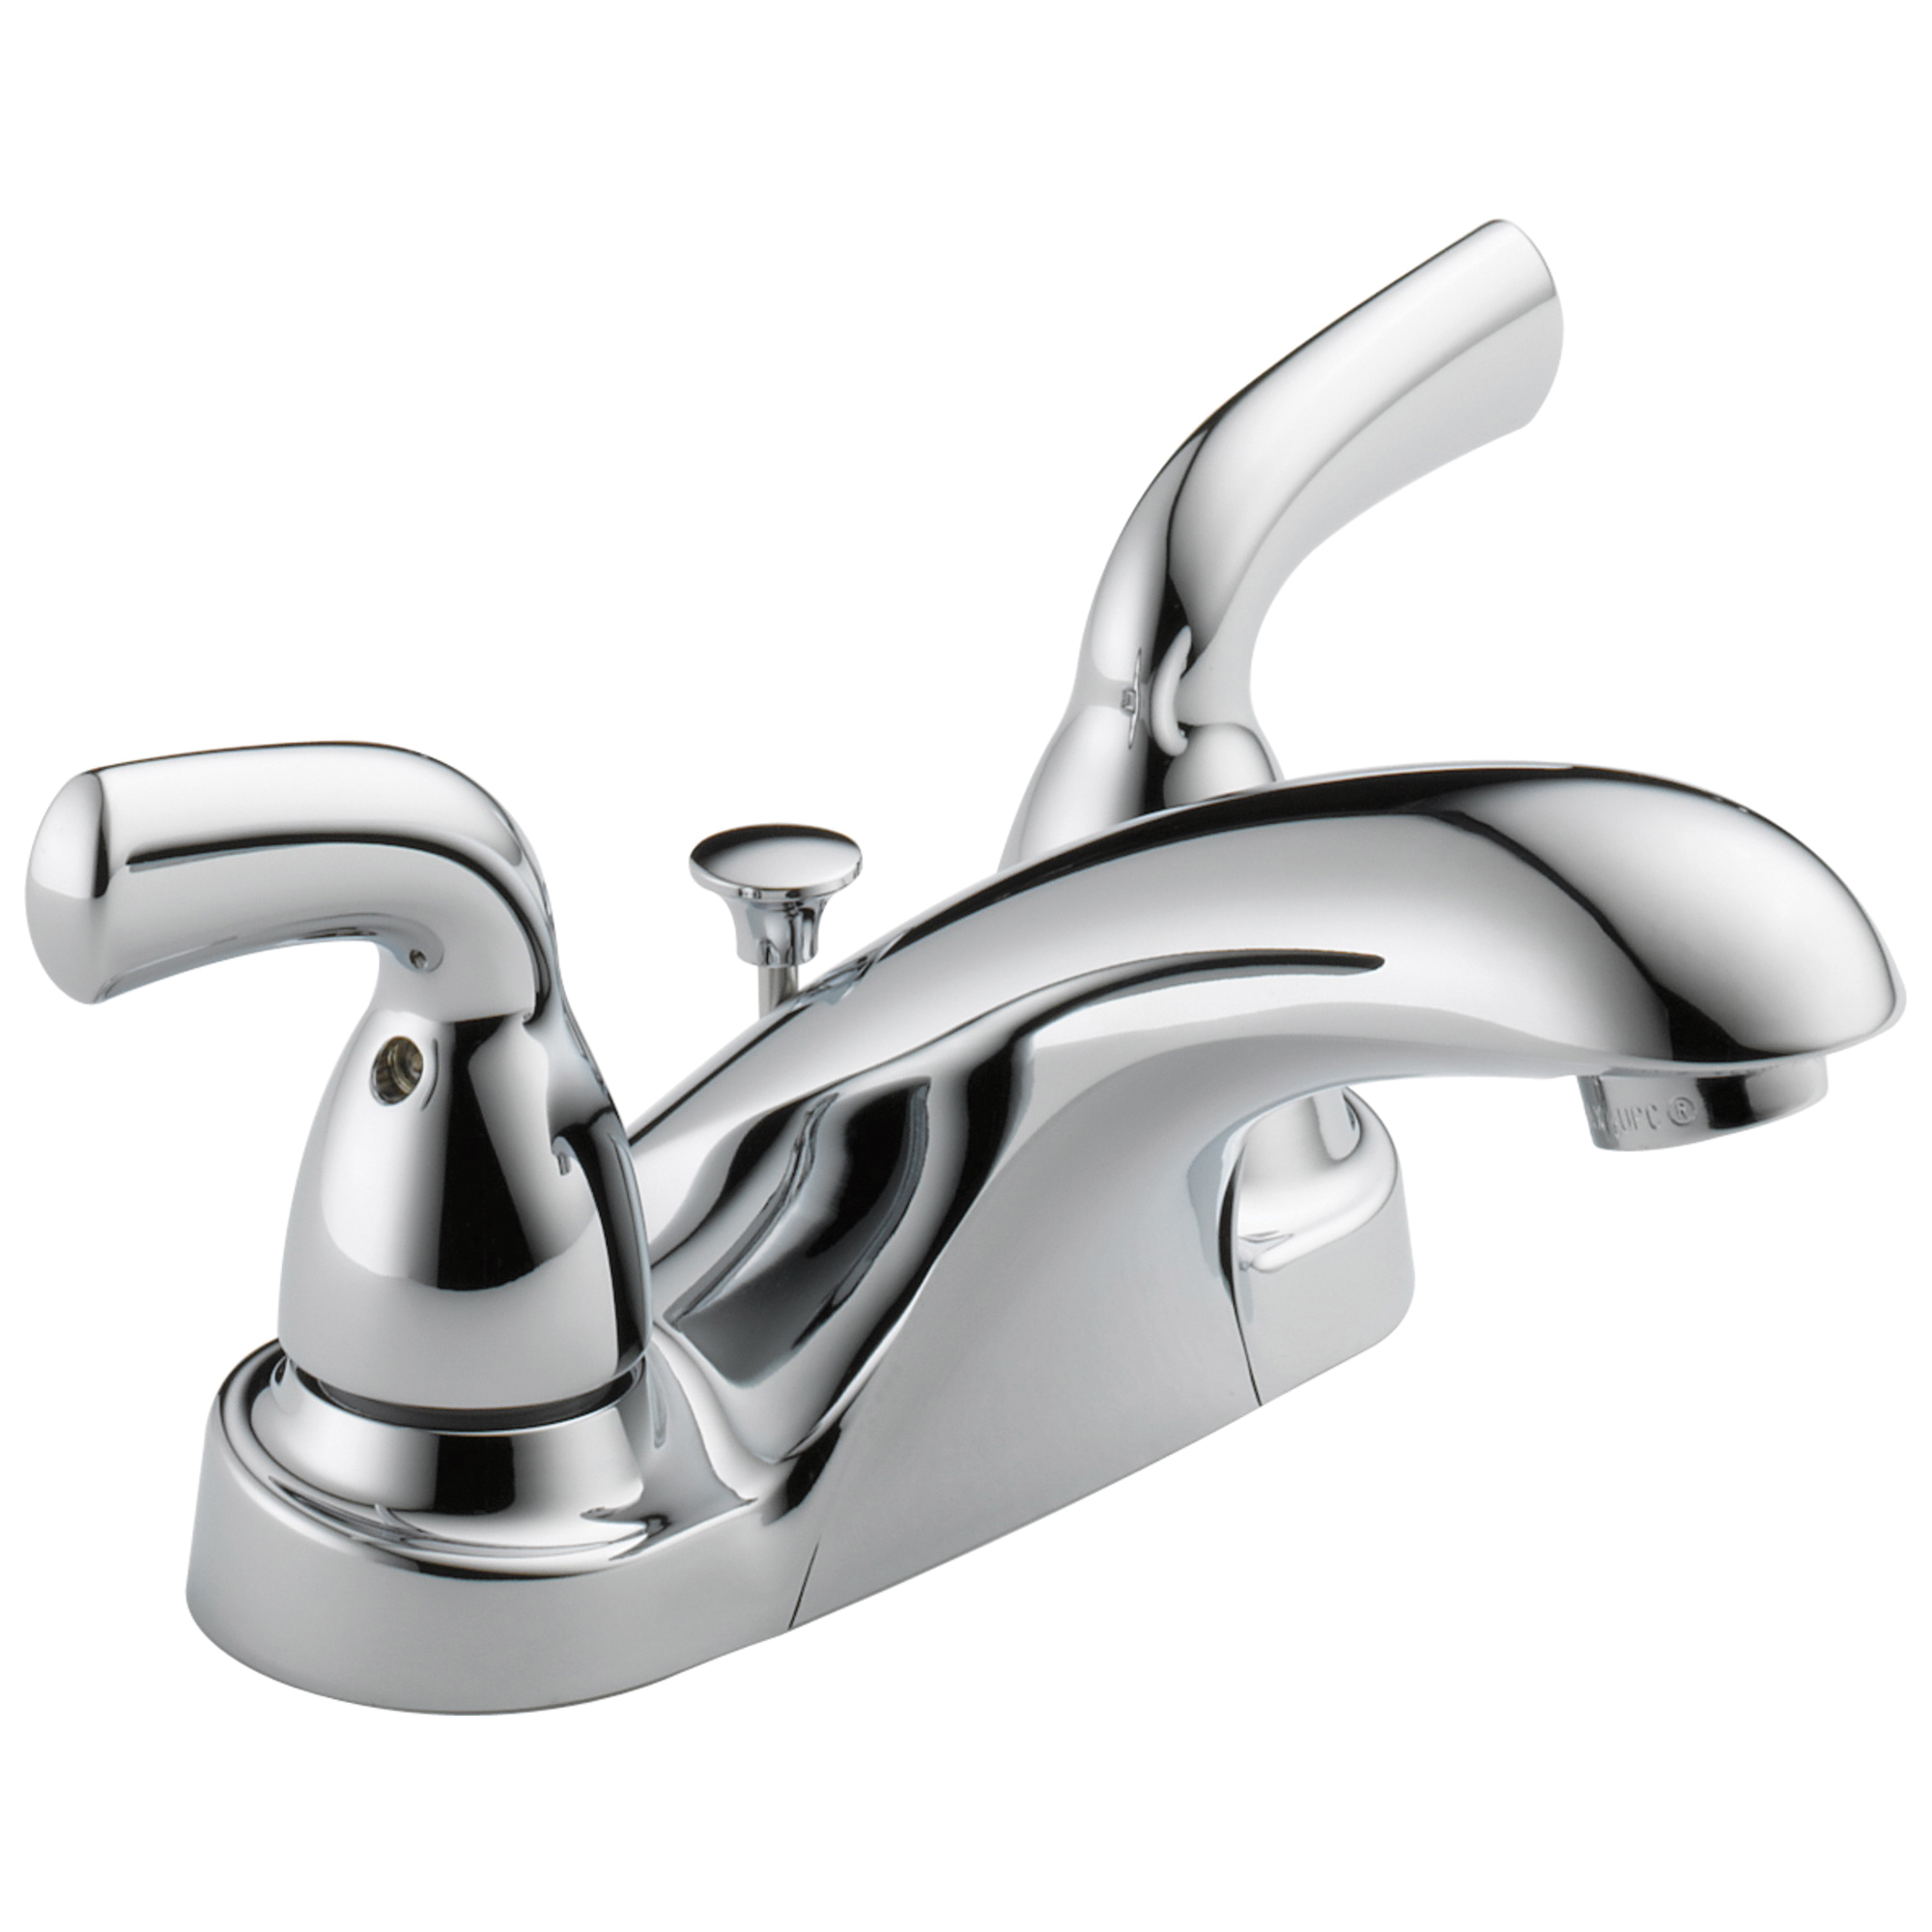 DELTA® B2510LF-PPU Centerset Lavatory Faucet, Foundations®, Chrome Plated, 2 Handles, Pop-Up Drain, 1.2 gpm